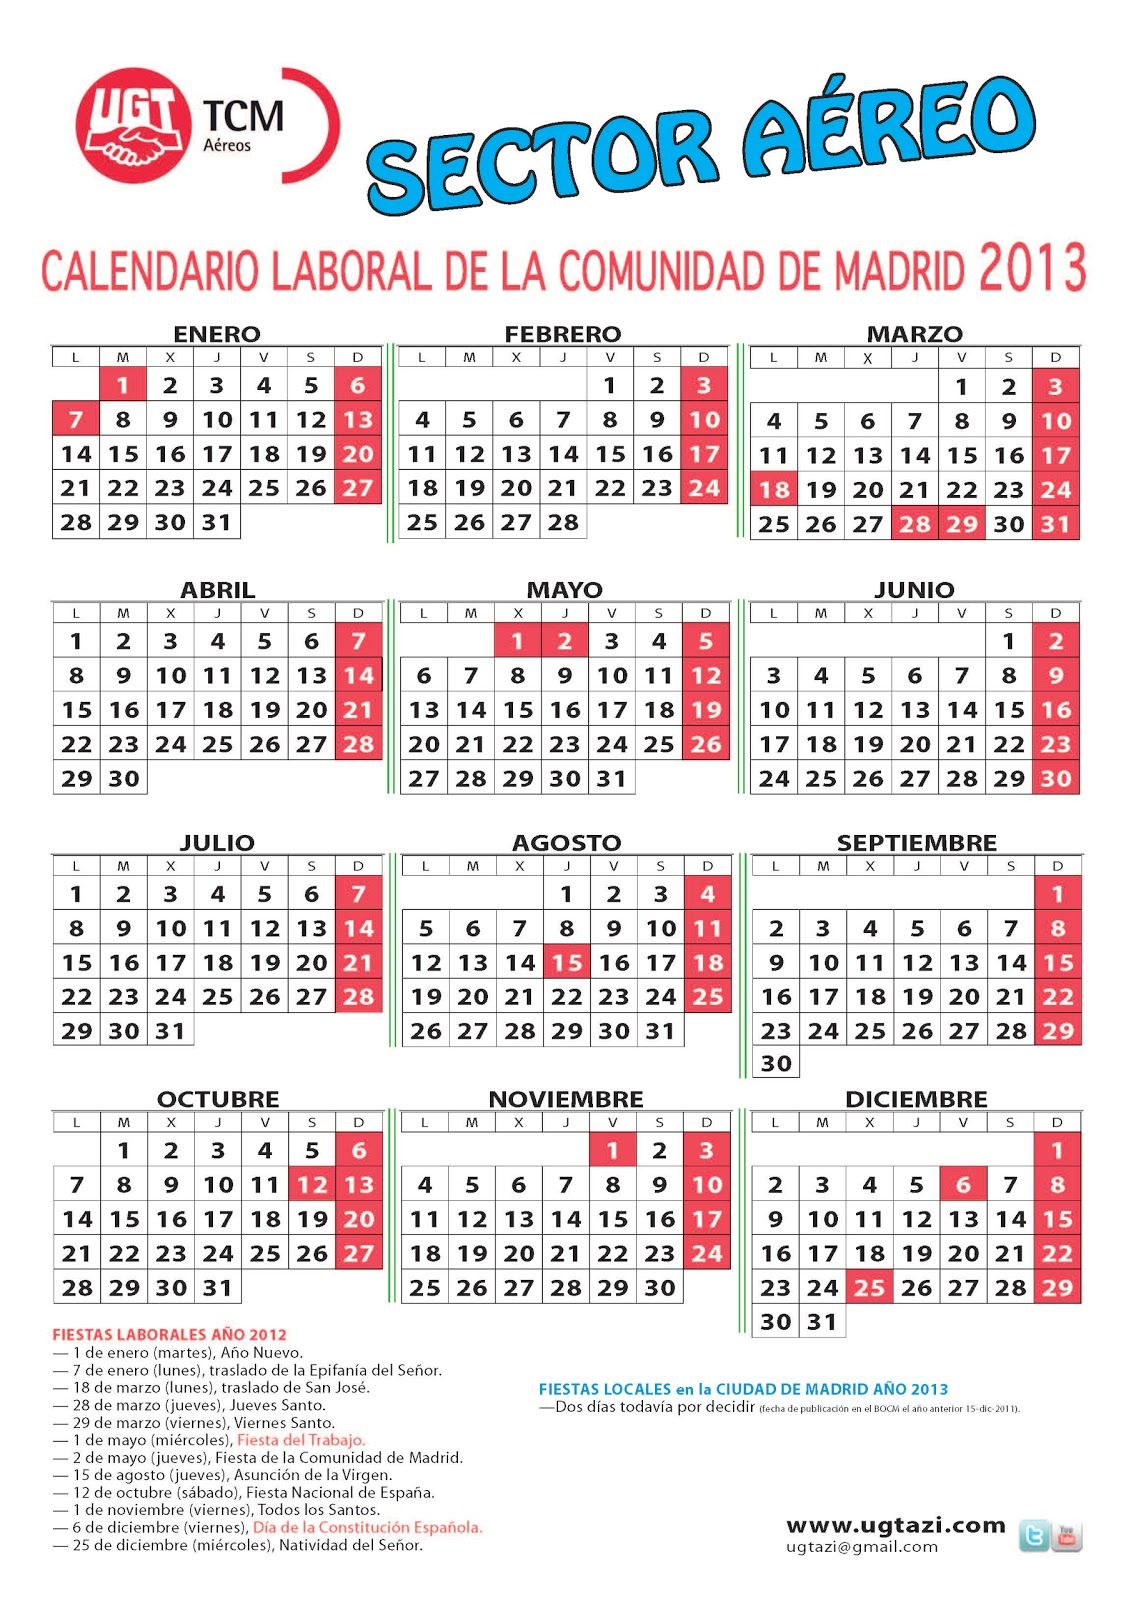 Calendario laboral del sector a reo en la comunidad de for Calendario eventos madrid